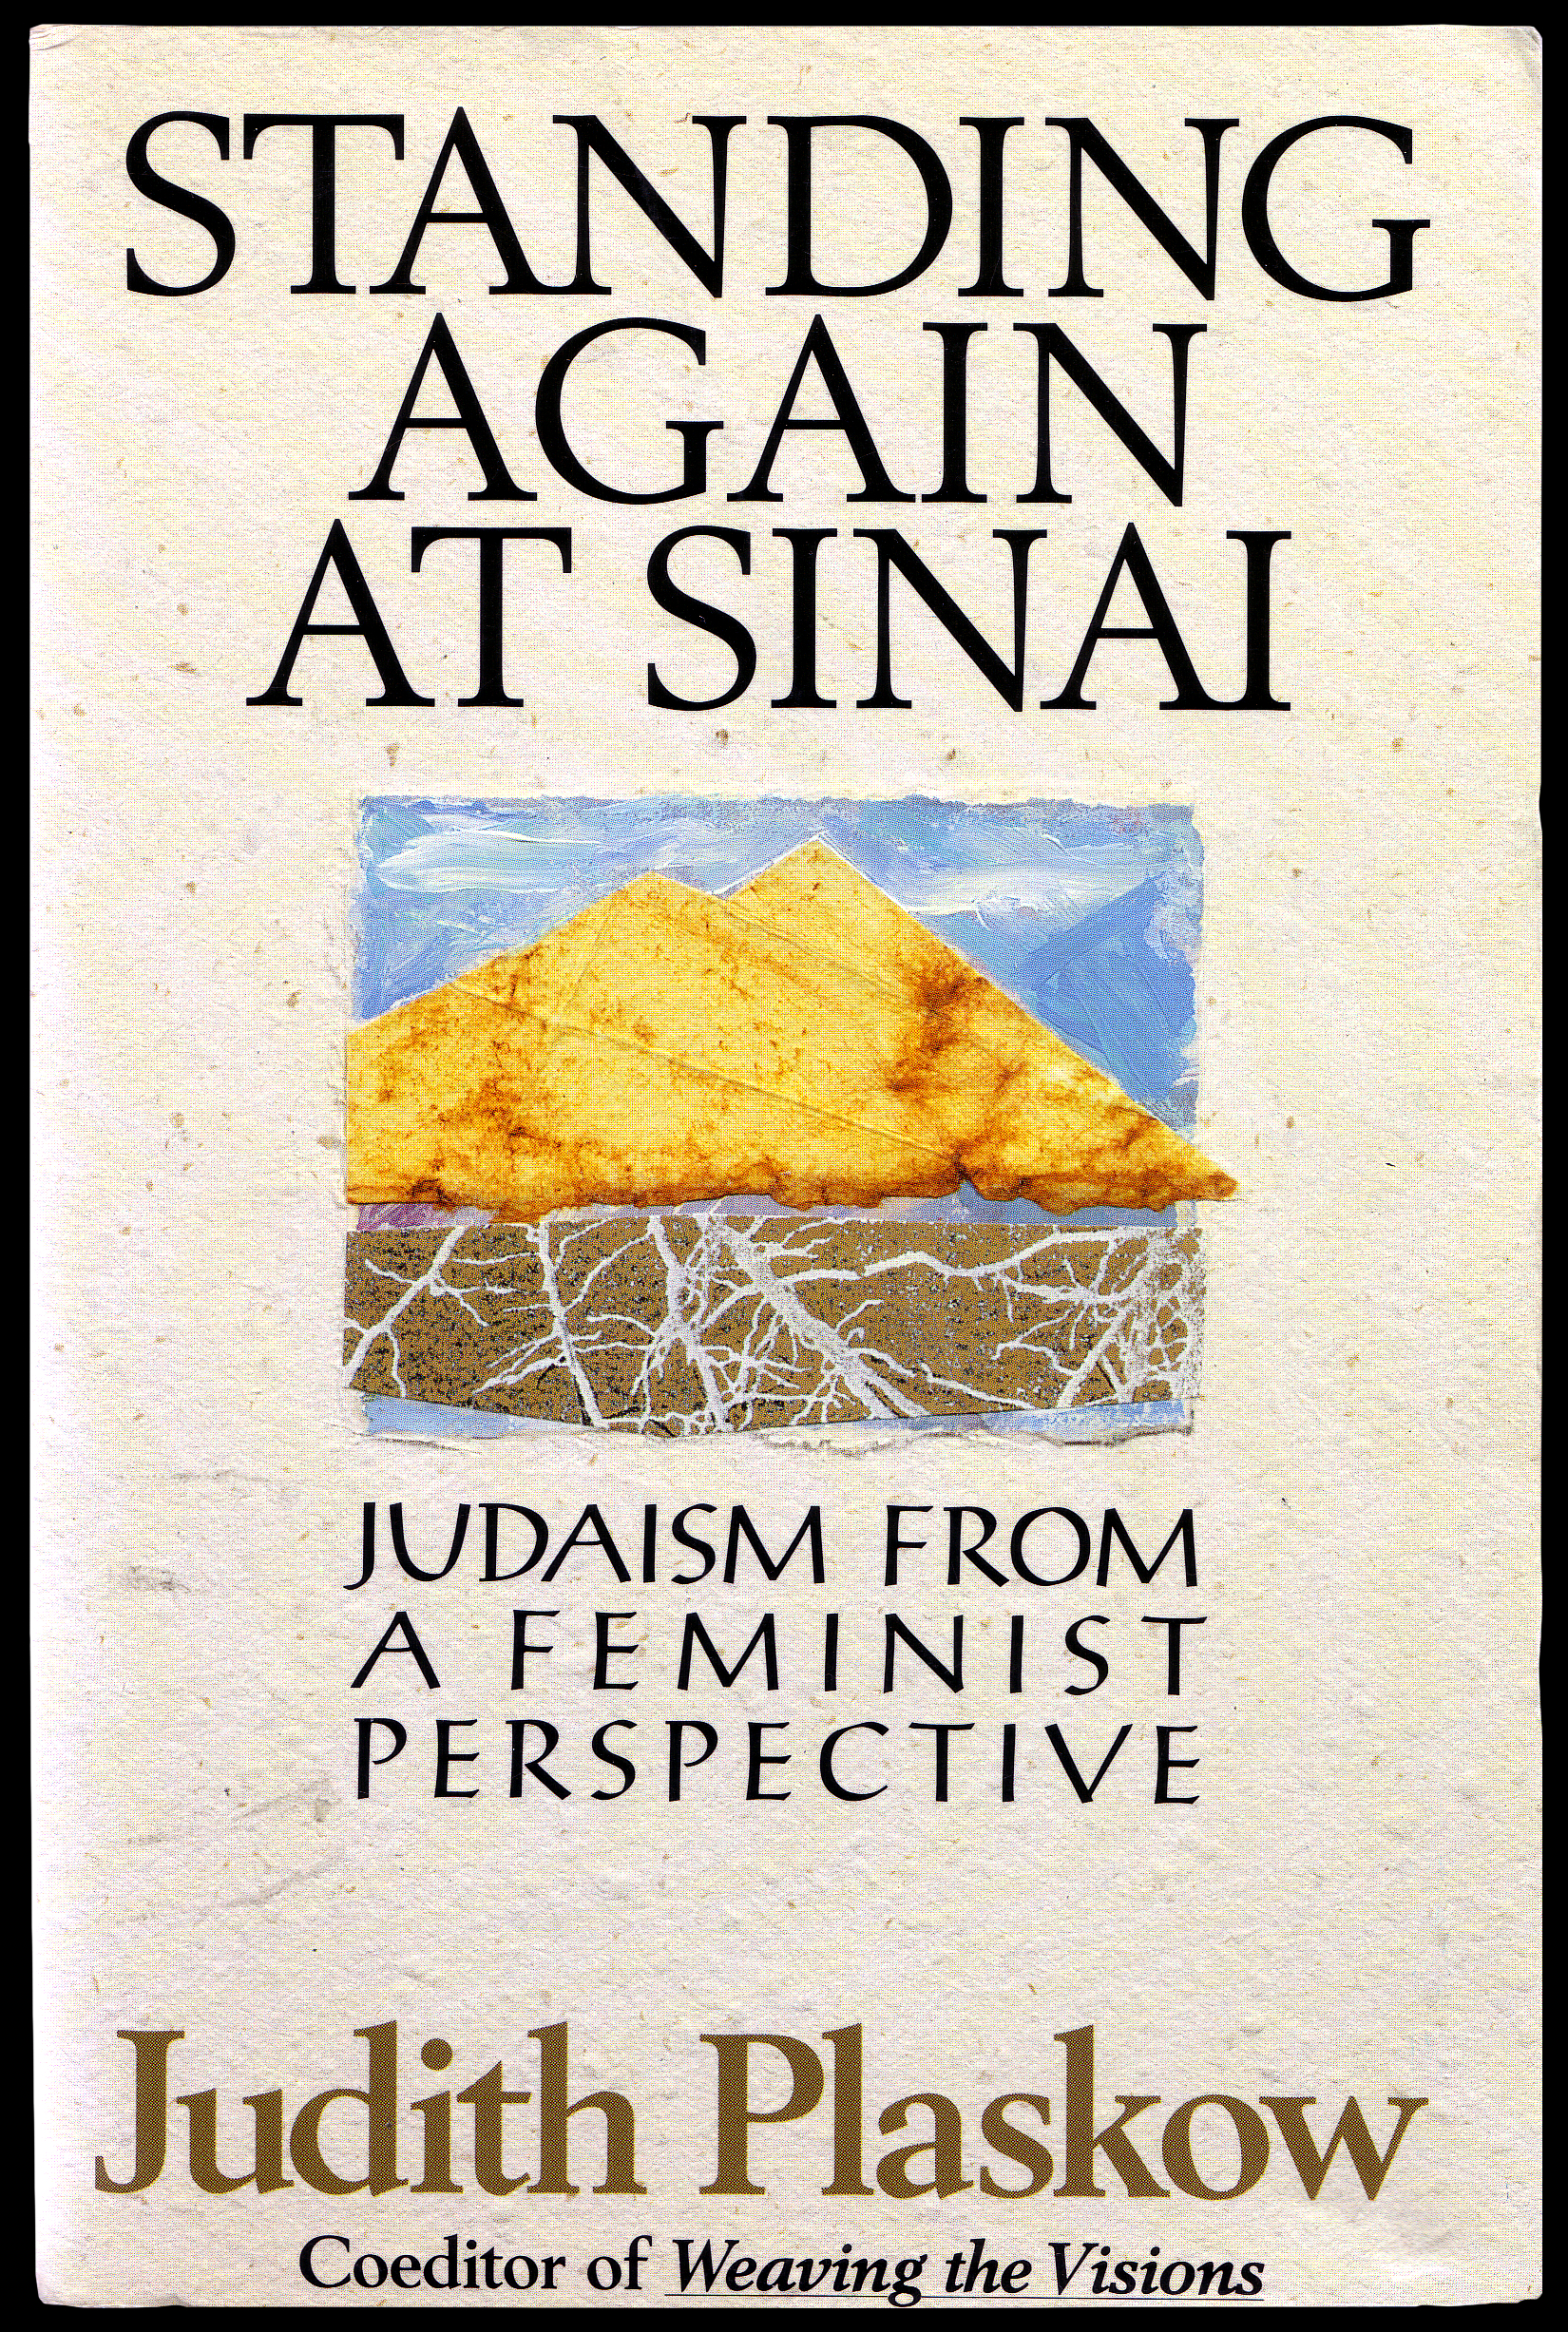 Judaism from a feminist perspective Judith Plaskow